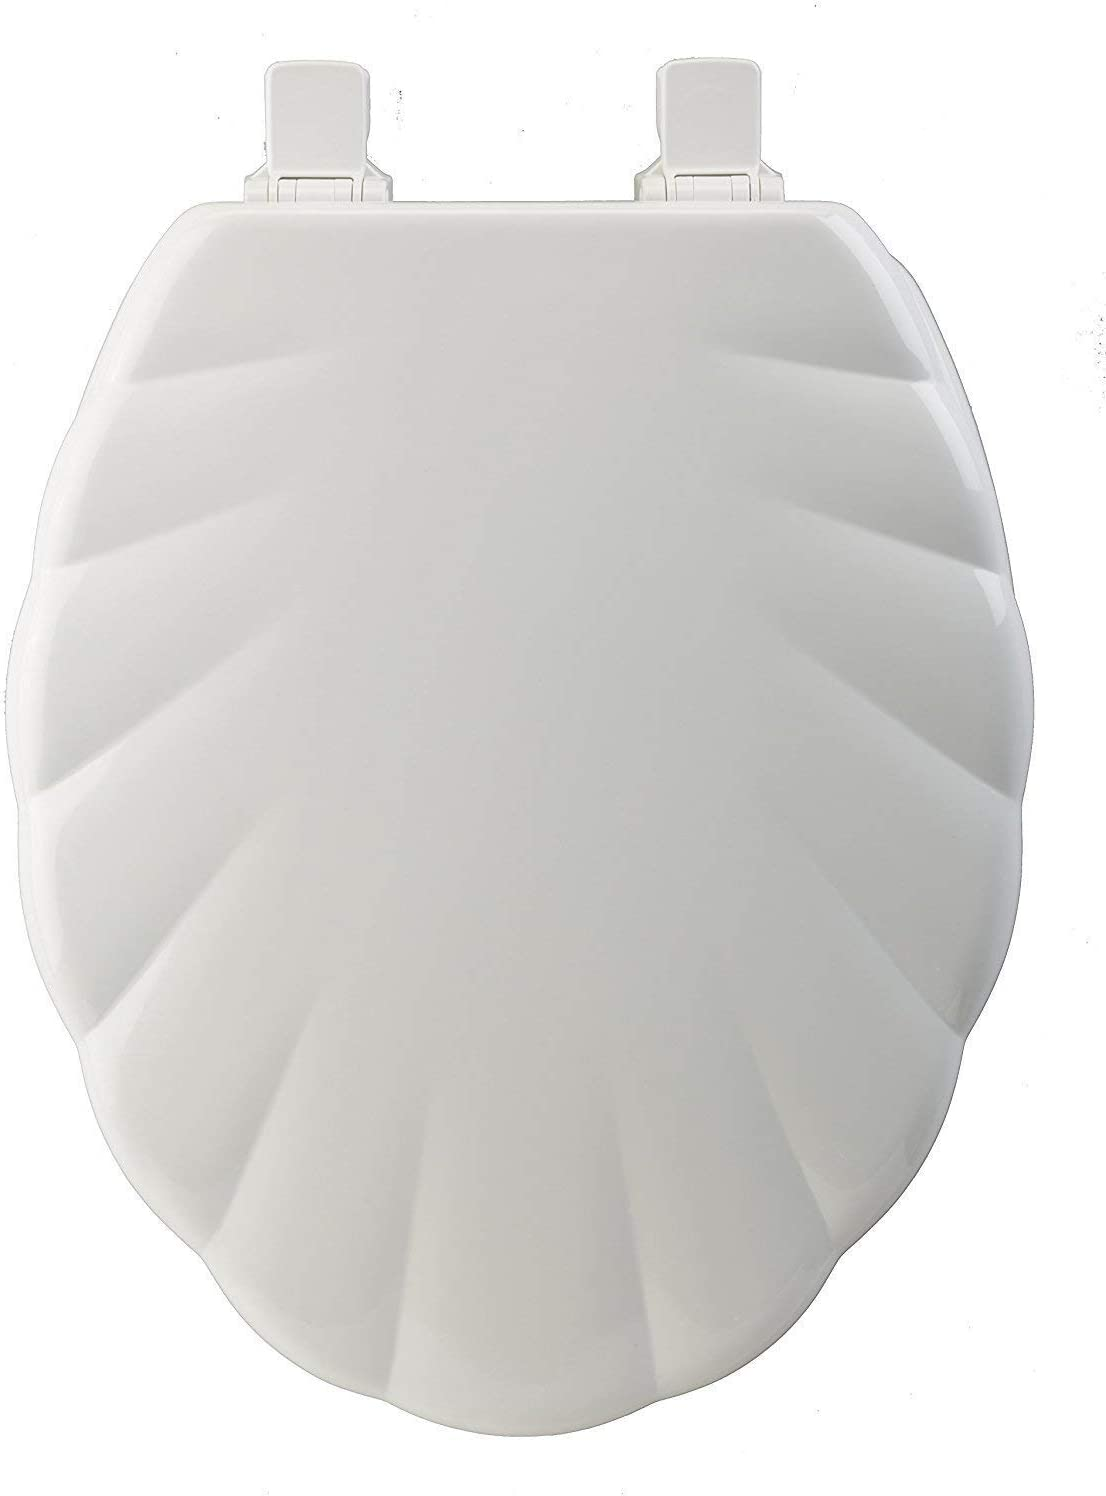 Mayfair Sculptured Shell Lift-Off Elongated Closed Max 42% OFF Regular discount Front Toilet